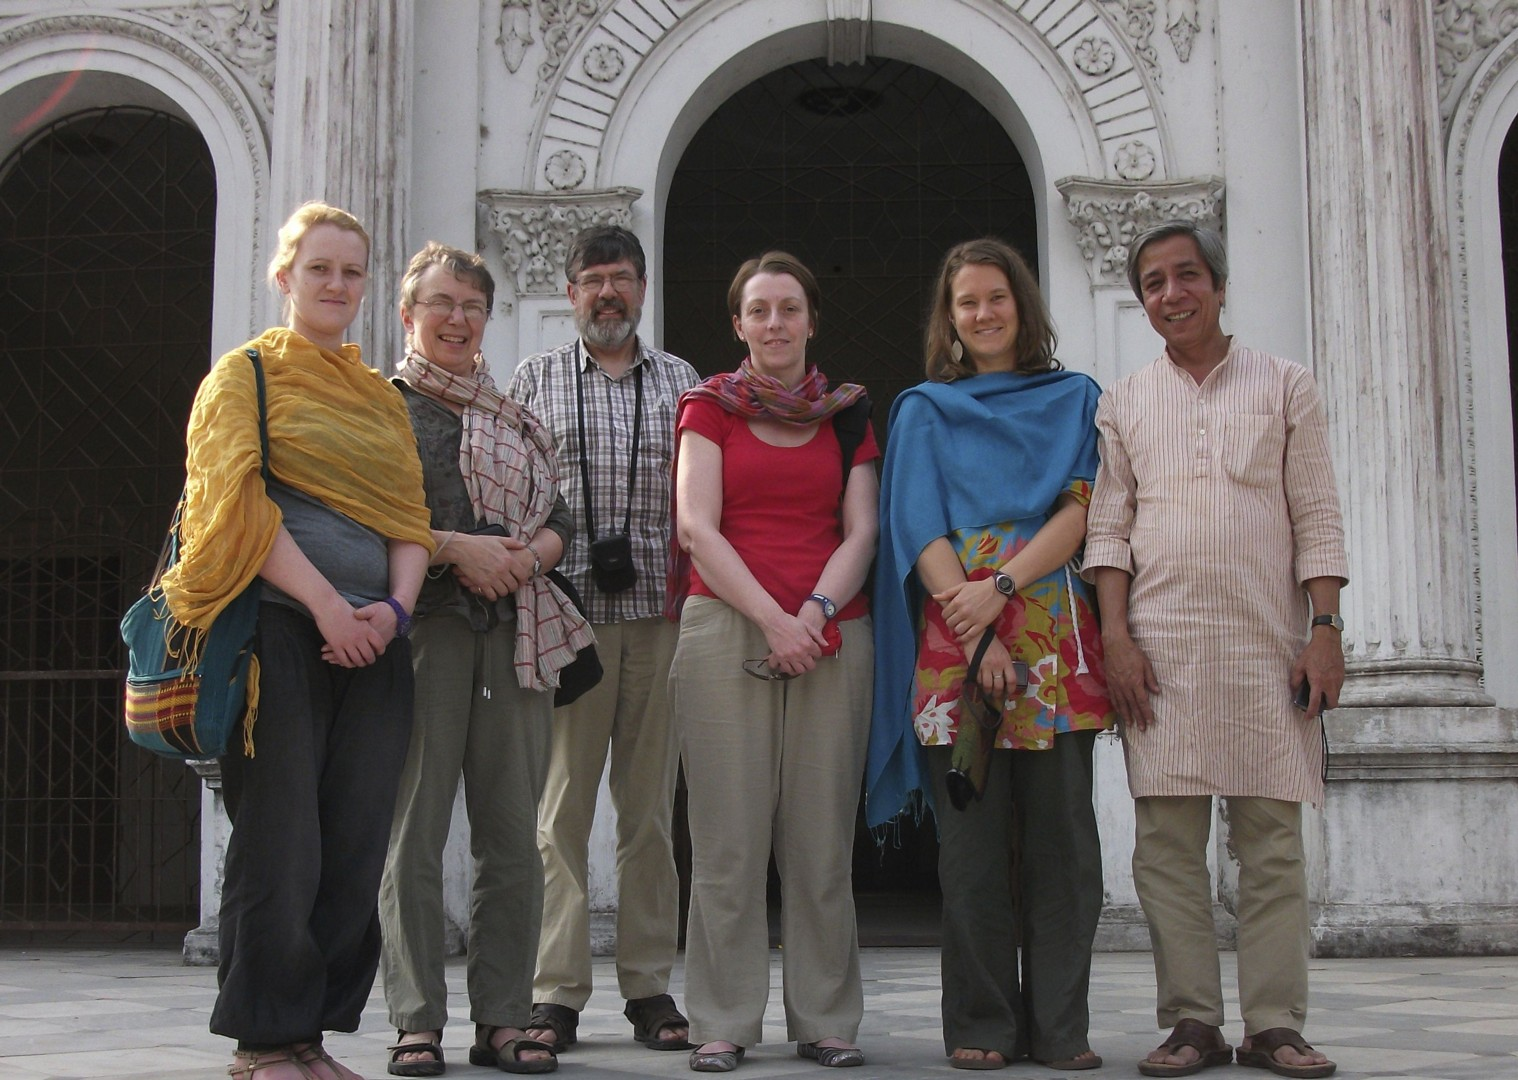 Sightseeing.jpg - Bangladesh - Meet the People Tours